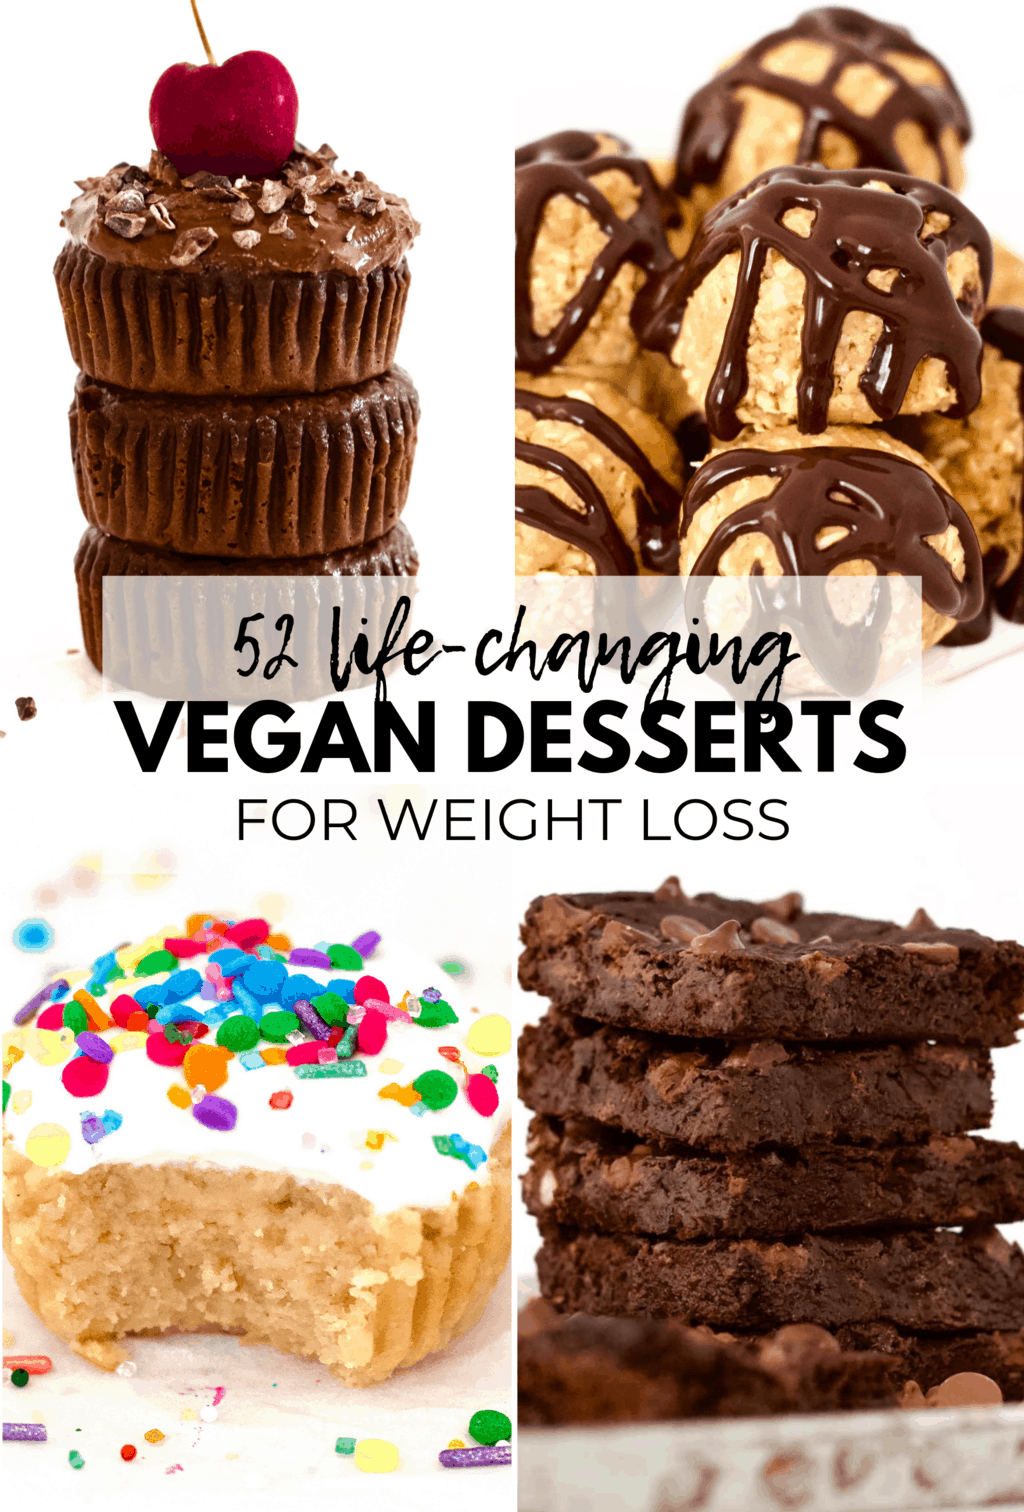 Here is a DELICIOUS collection of 50+ AMAZING Vegan Desserts for Weight Loss! All recipes are gluten-free, dairy-free & low-calorie – under 100 calories each! These recipes will make sure that you can still indulge your sweet tooth while achieving your weight loss goals.